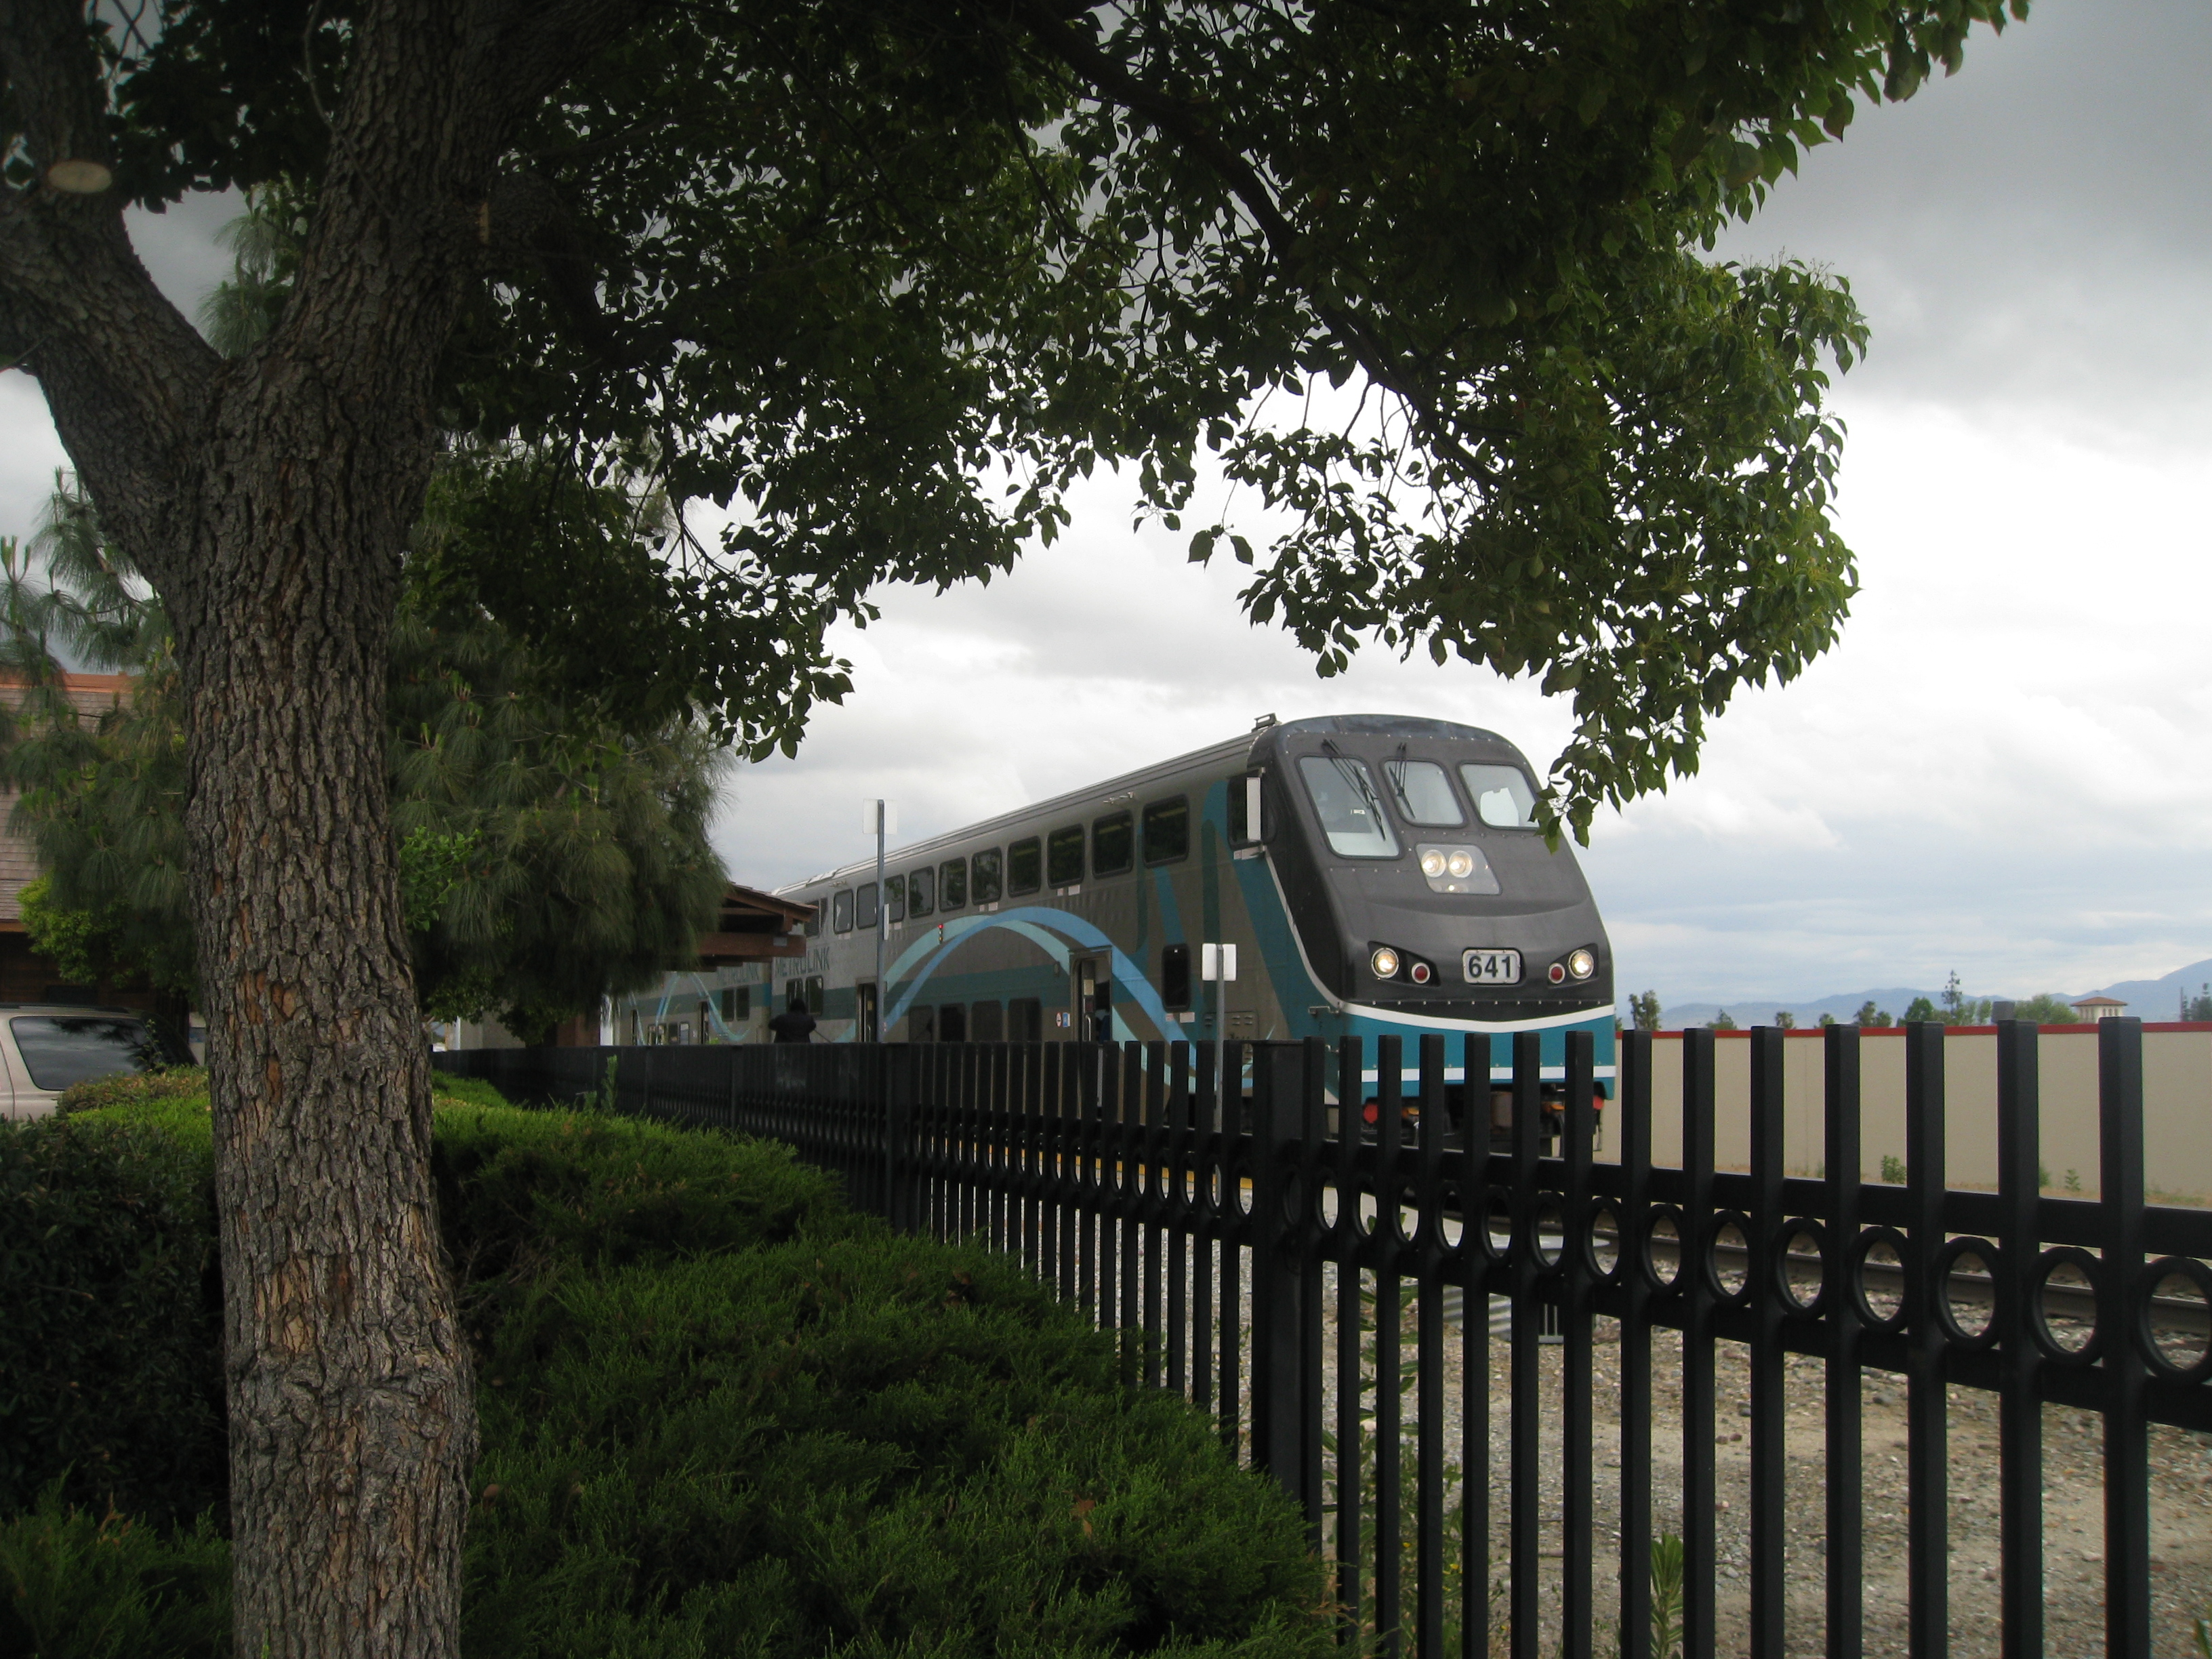 Rialto_Metrolink Train_CLR